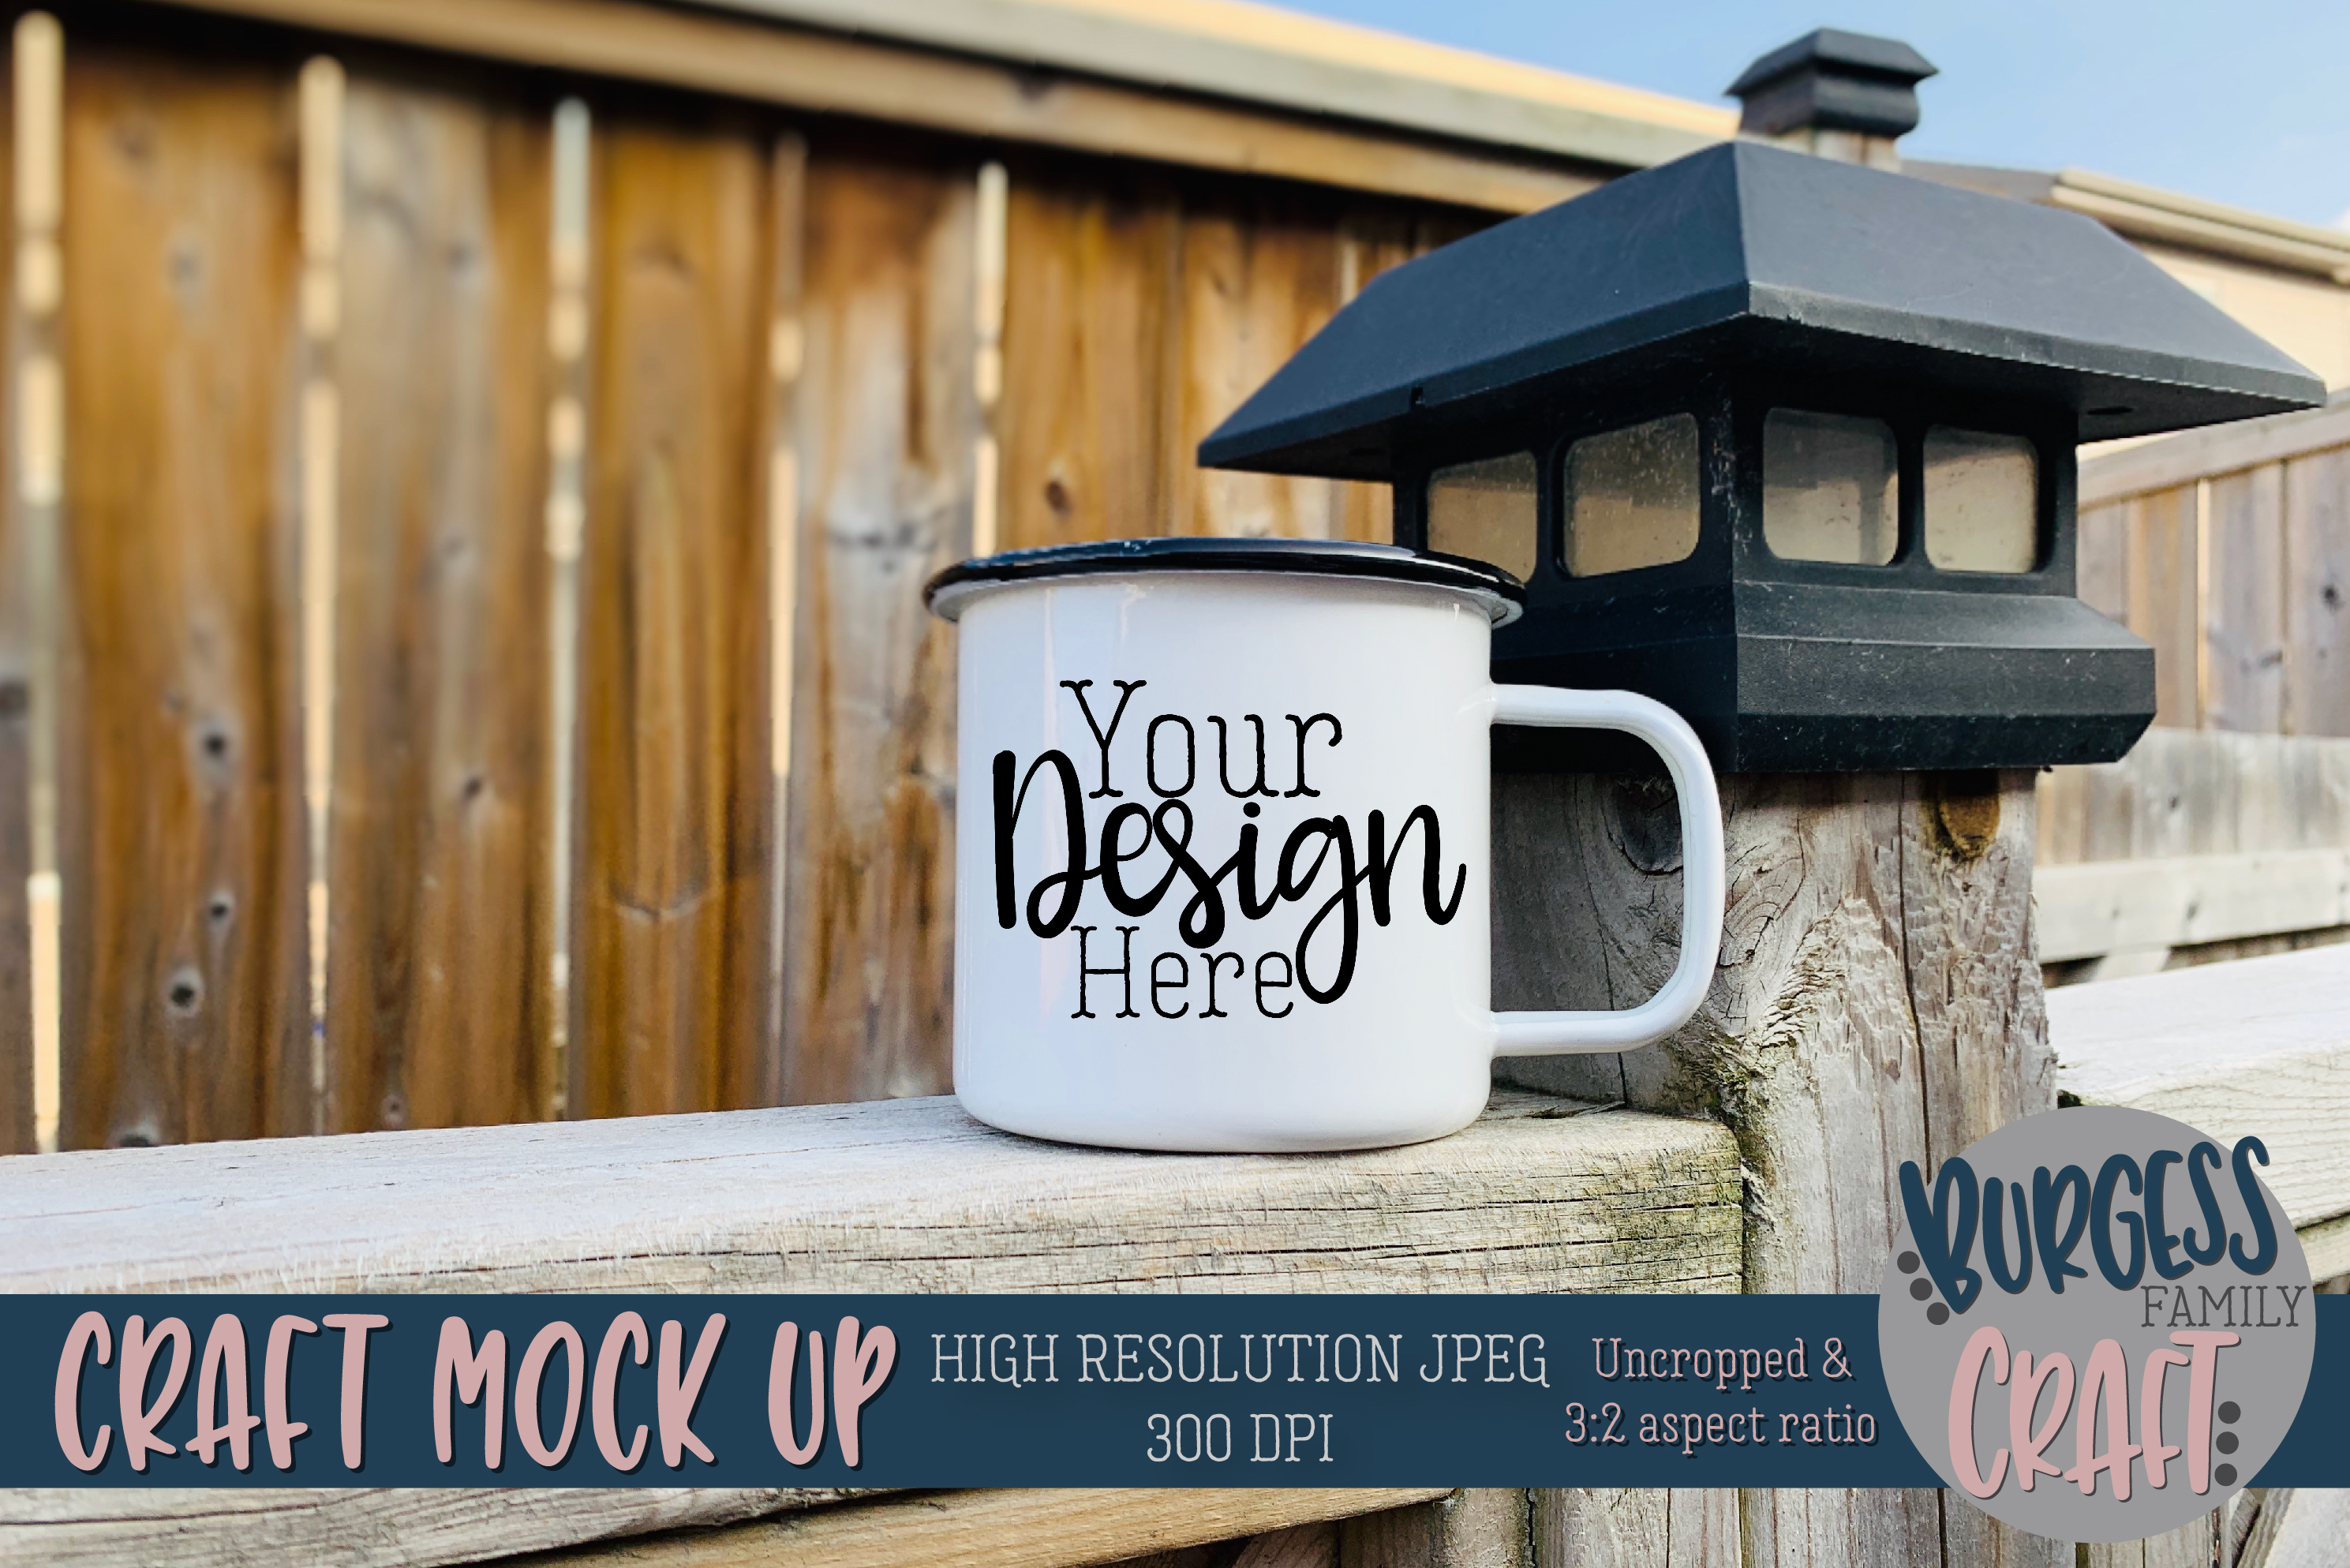 Mug on fence Craft mock up|High Resolution JPEG example image 1